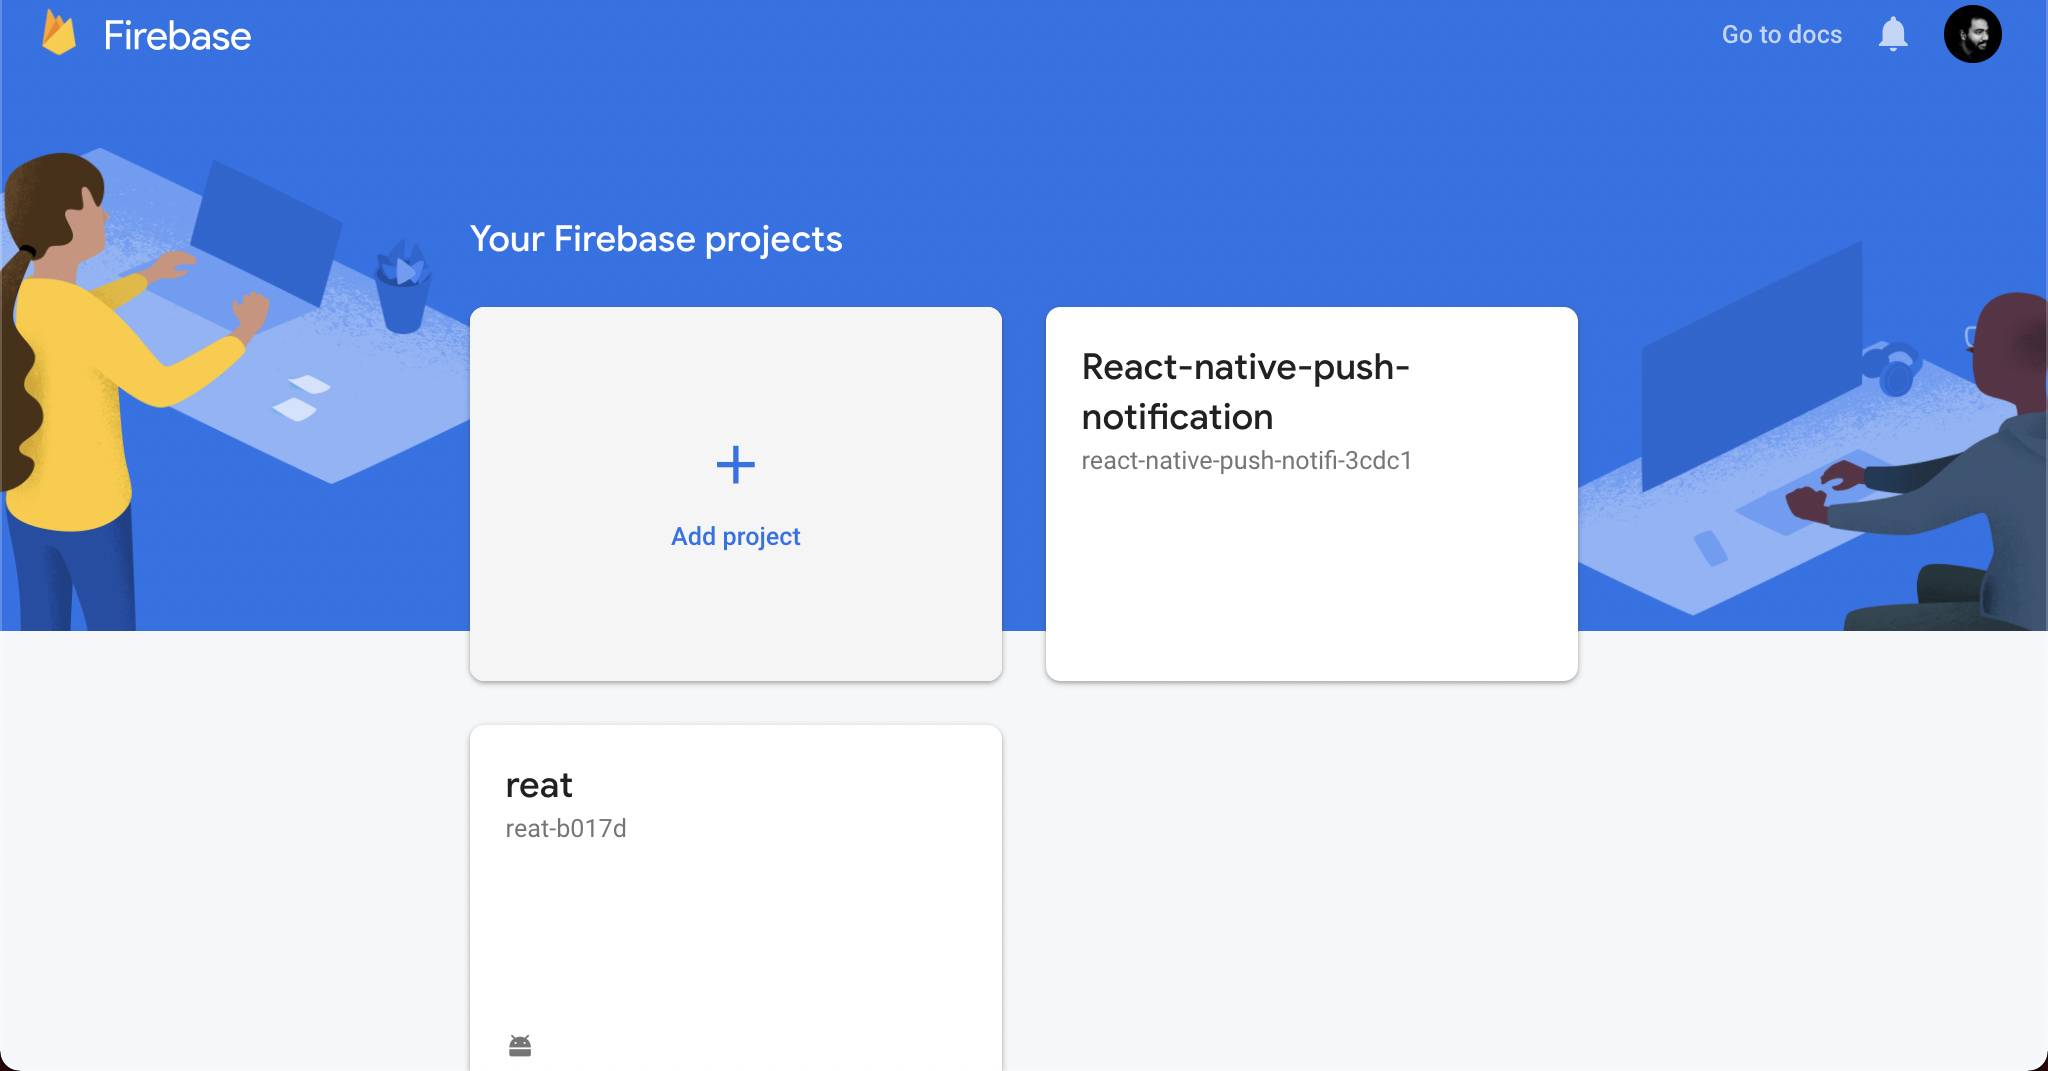 Add your project to Firebase